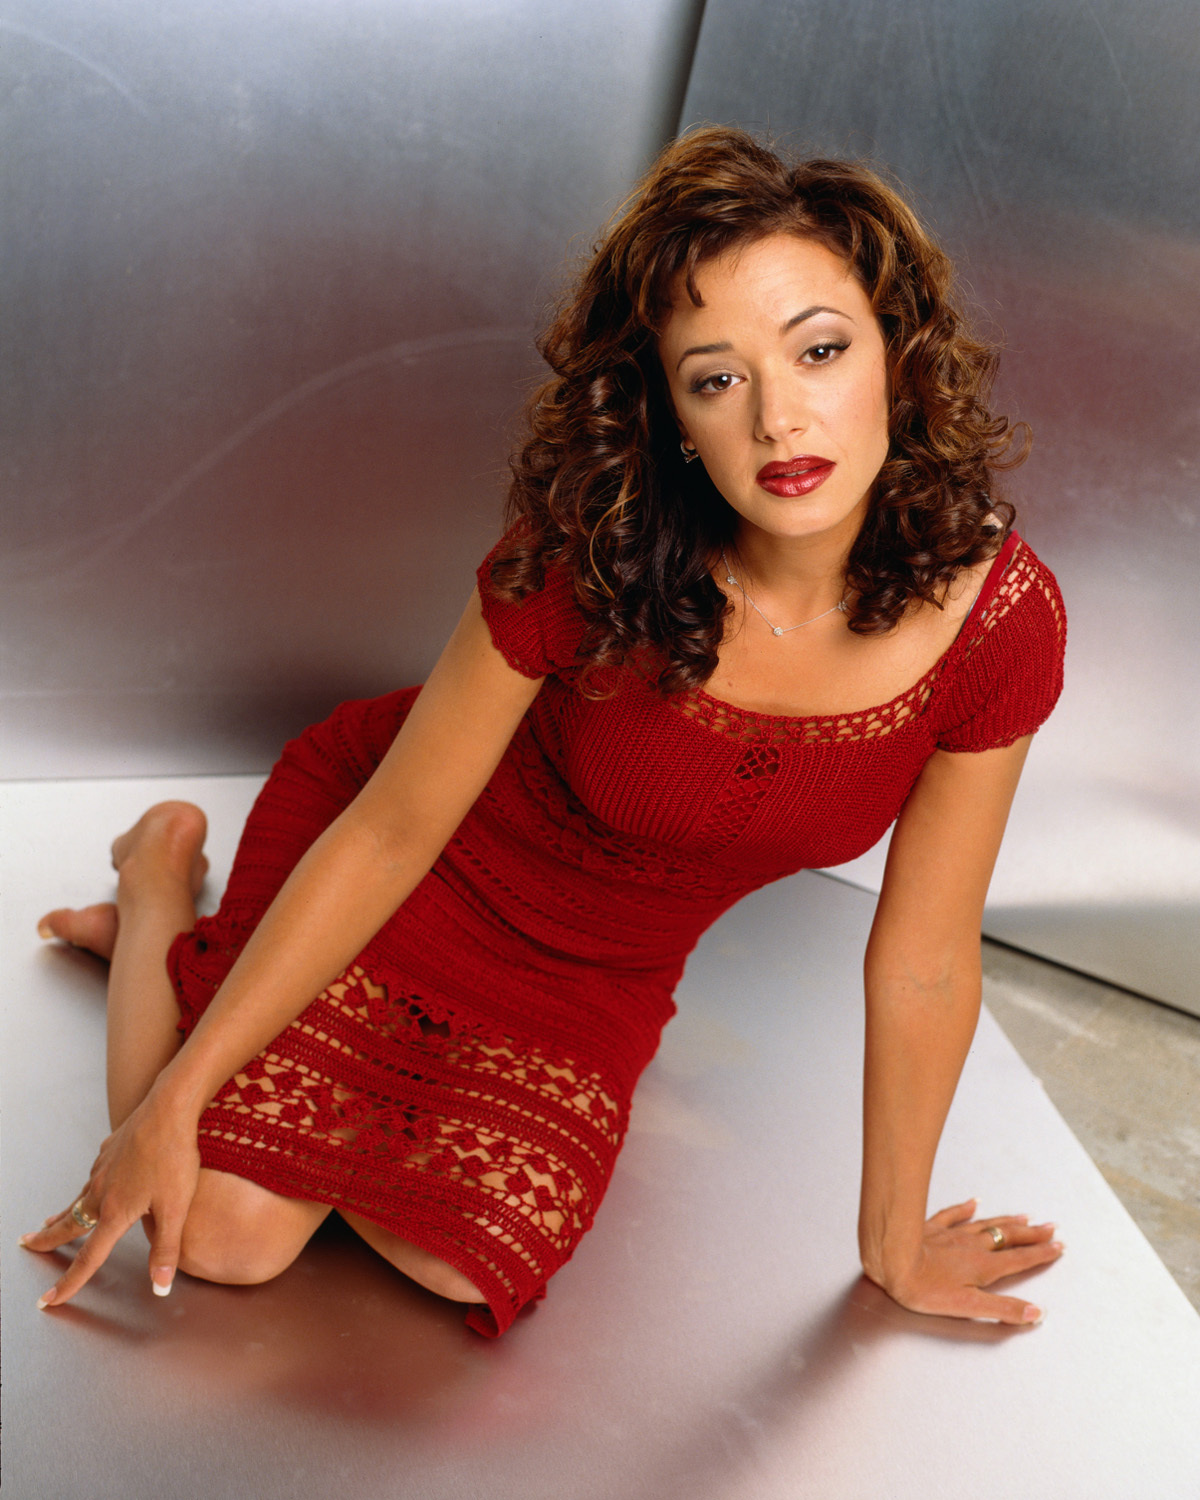 Naked pictures of leah remini photos 19